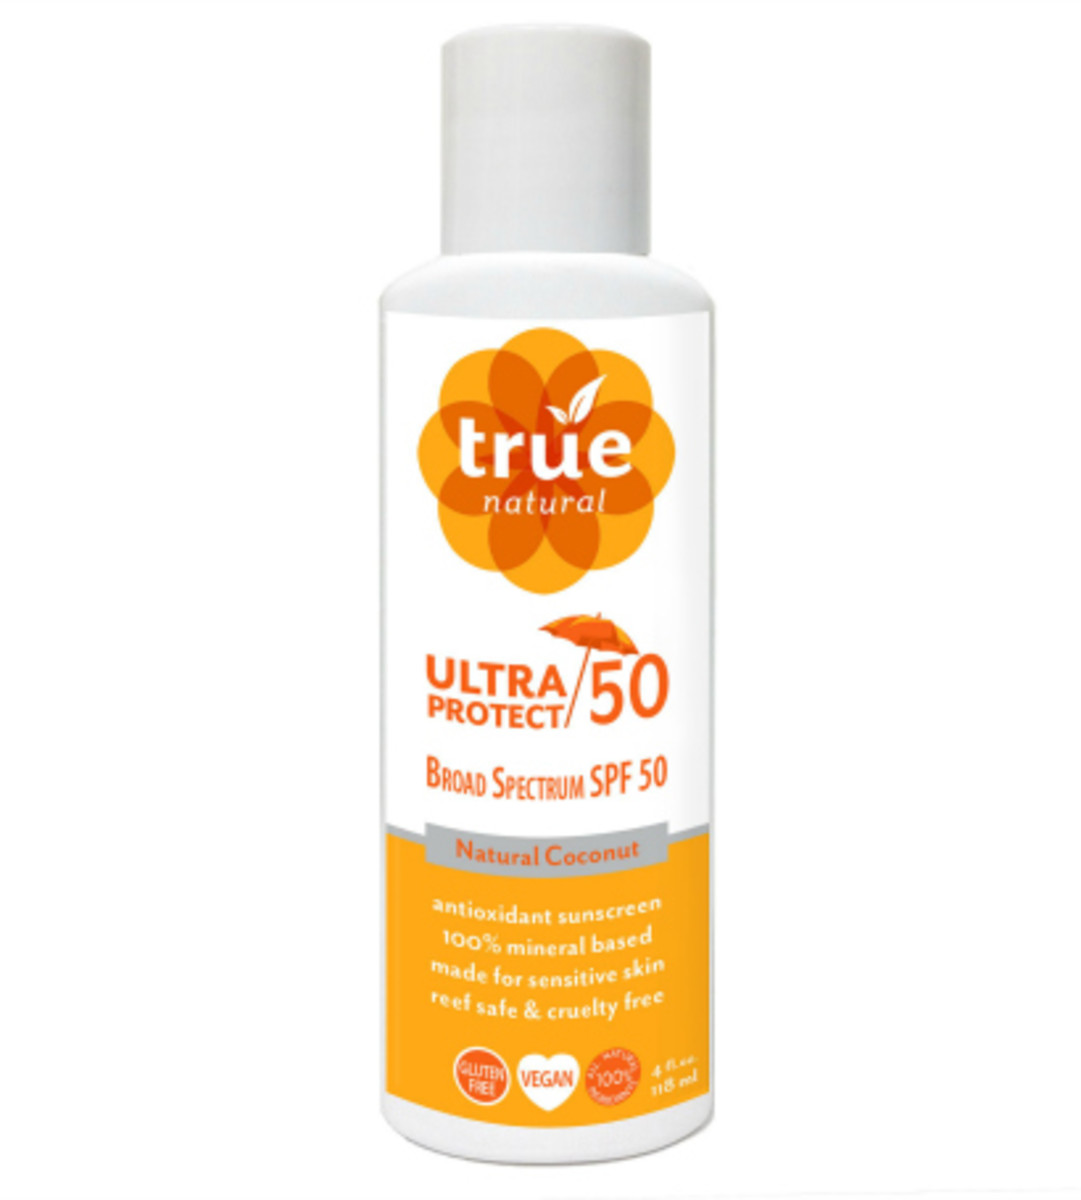 Natural Sunscreen True Natural Ultra 50